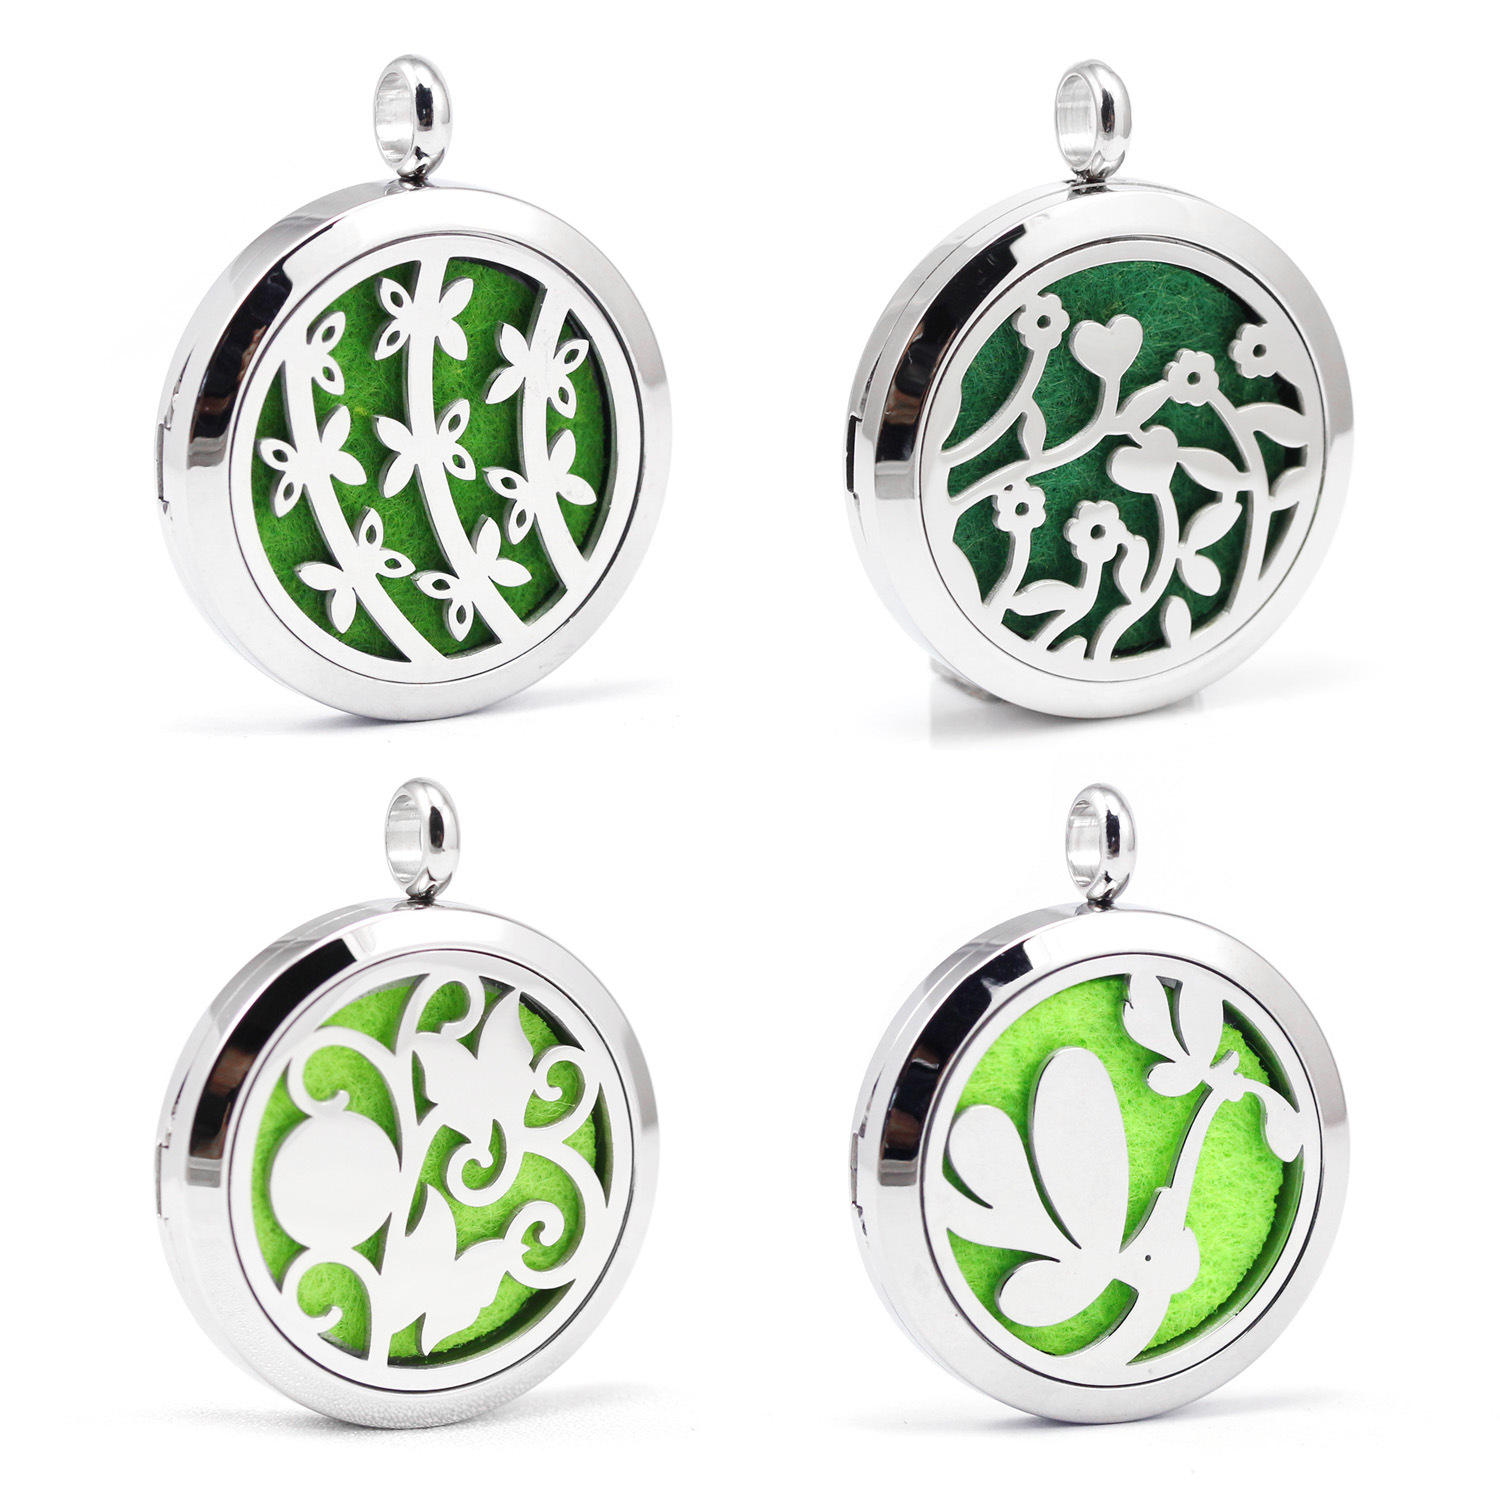 154 Styles 30mm Necklace Jewellery Pendants Diffuser Pendant Essential Oil Tree Shape Fashion Aromatherapy Jewelry